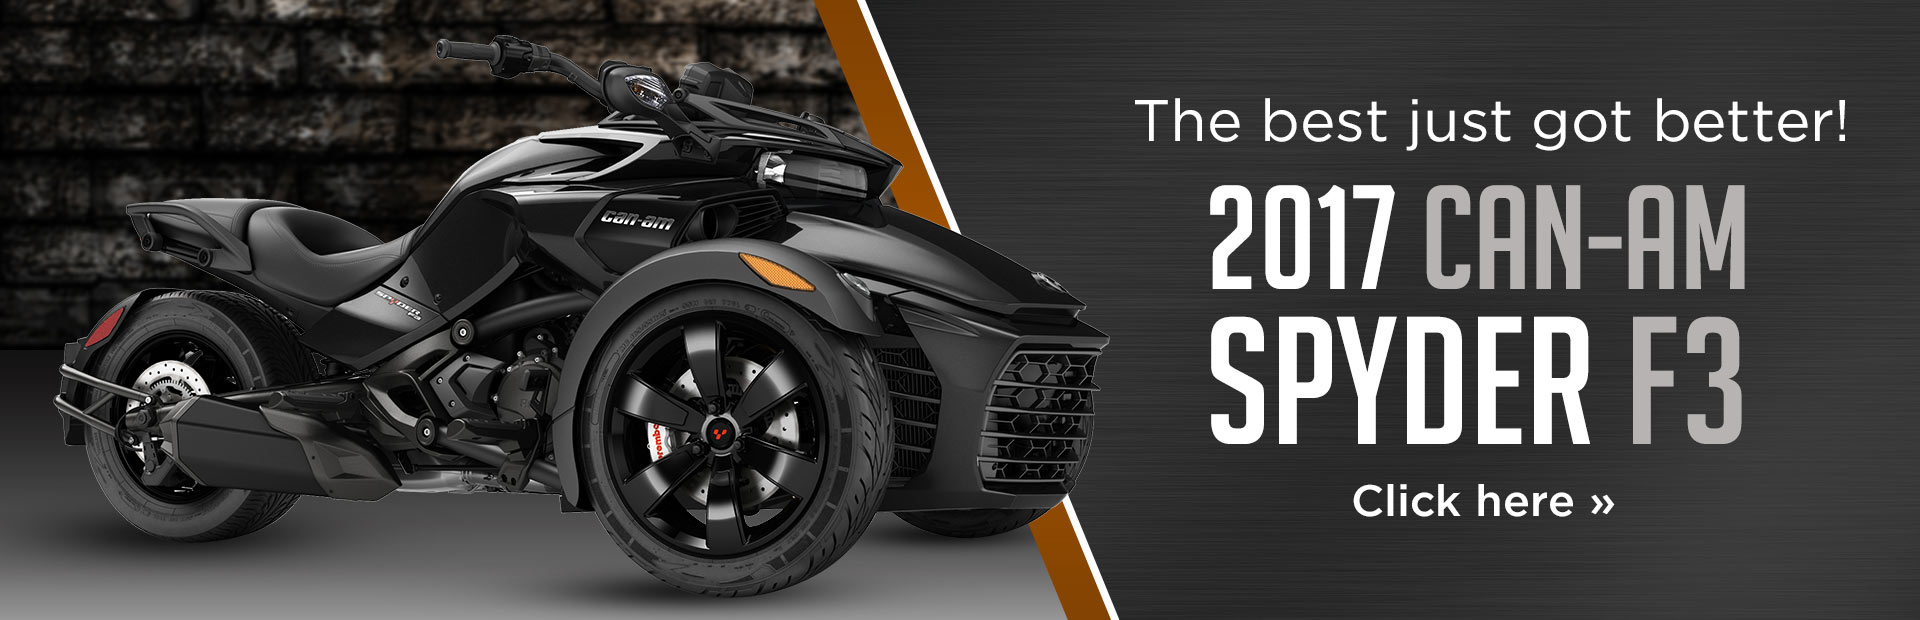 The best just got better with the 2017 Can-Am Spyder F3! Click here to view our selection.